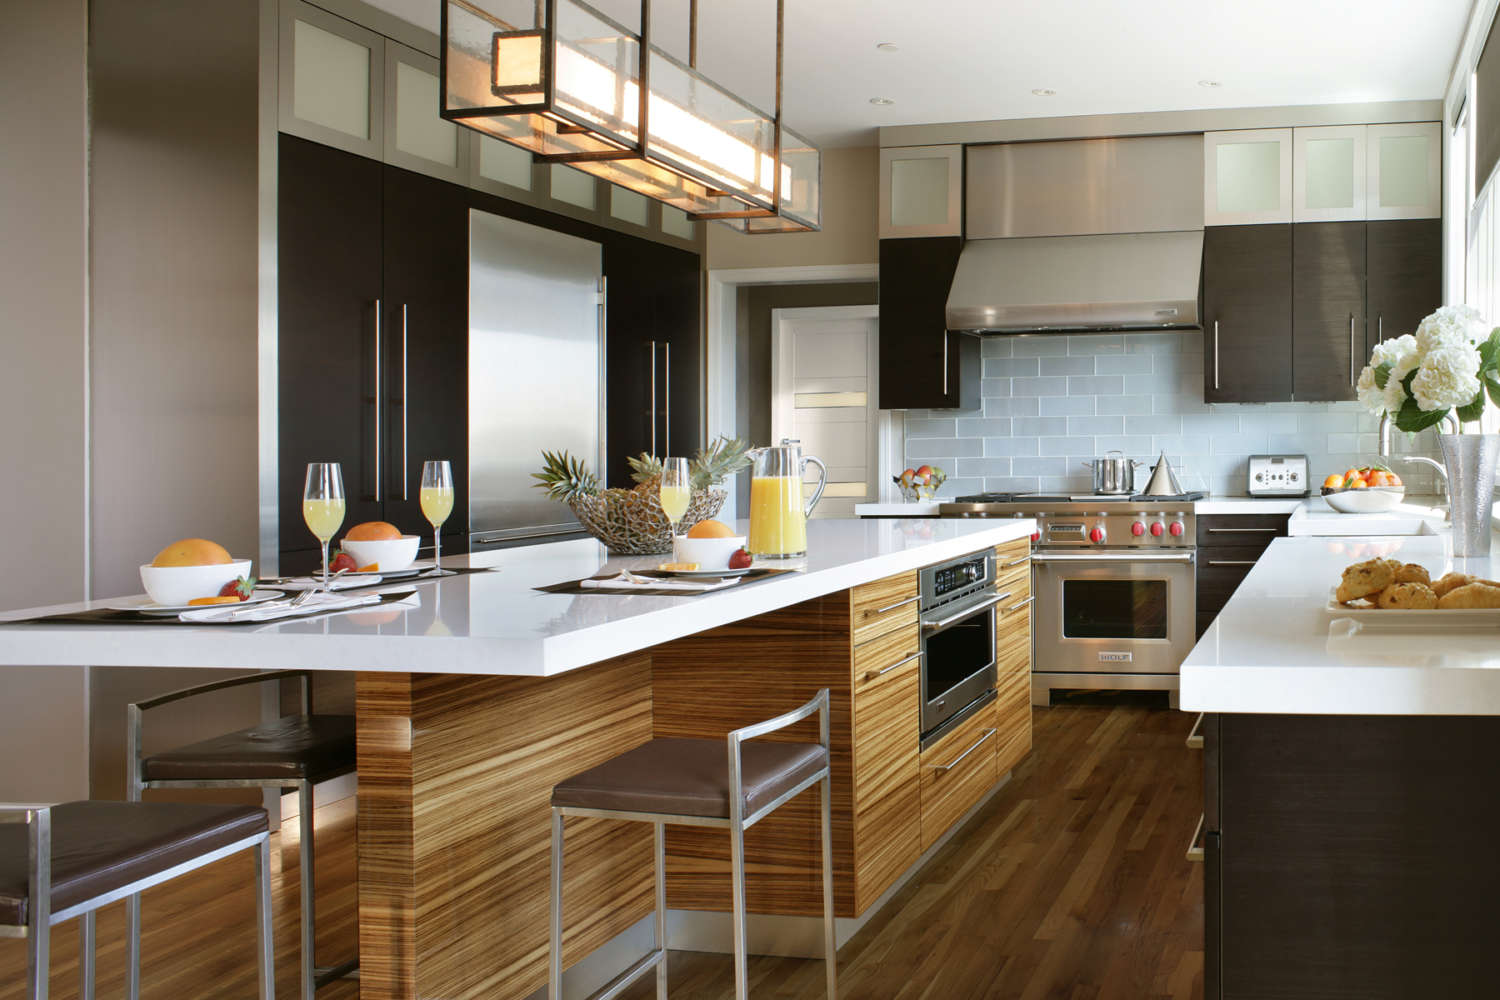 Modern kitchen with black pine laminate flat panel, frameless Artcraft cabinets and zebrawood laminate island with seating. Brushed stainless elements and glass subway tiles provide textural accents. Design by Peter Bittner of Bilotta Kitchens.